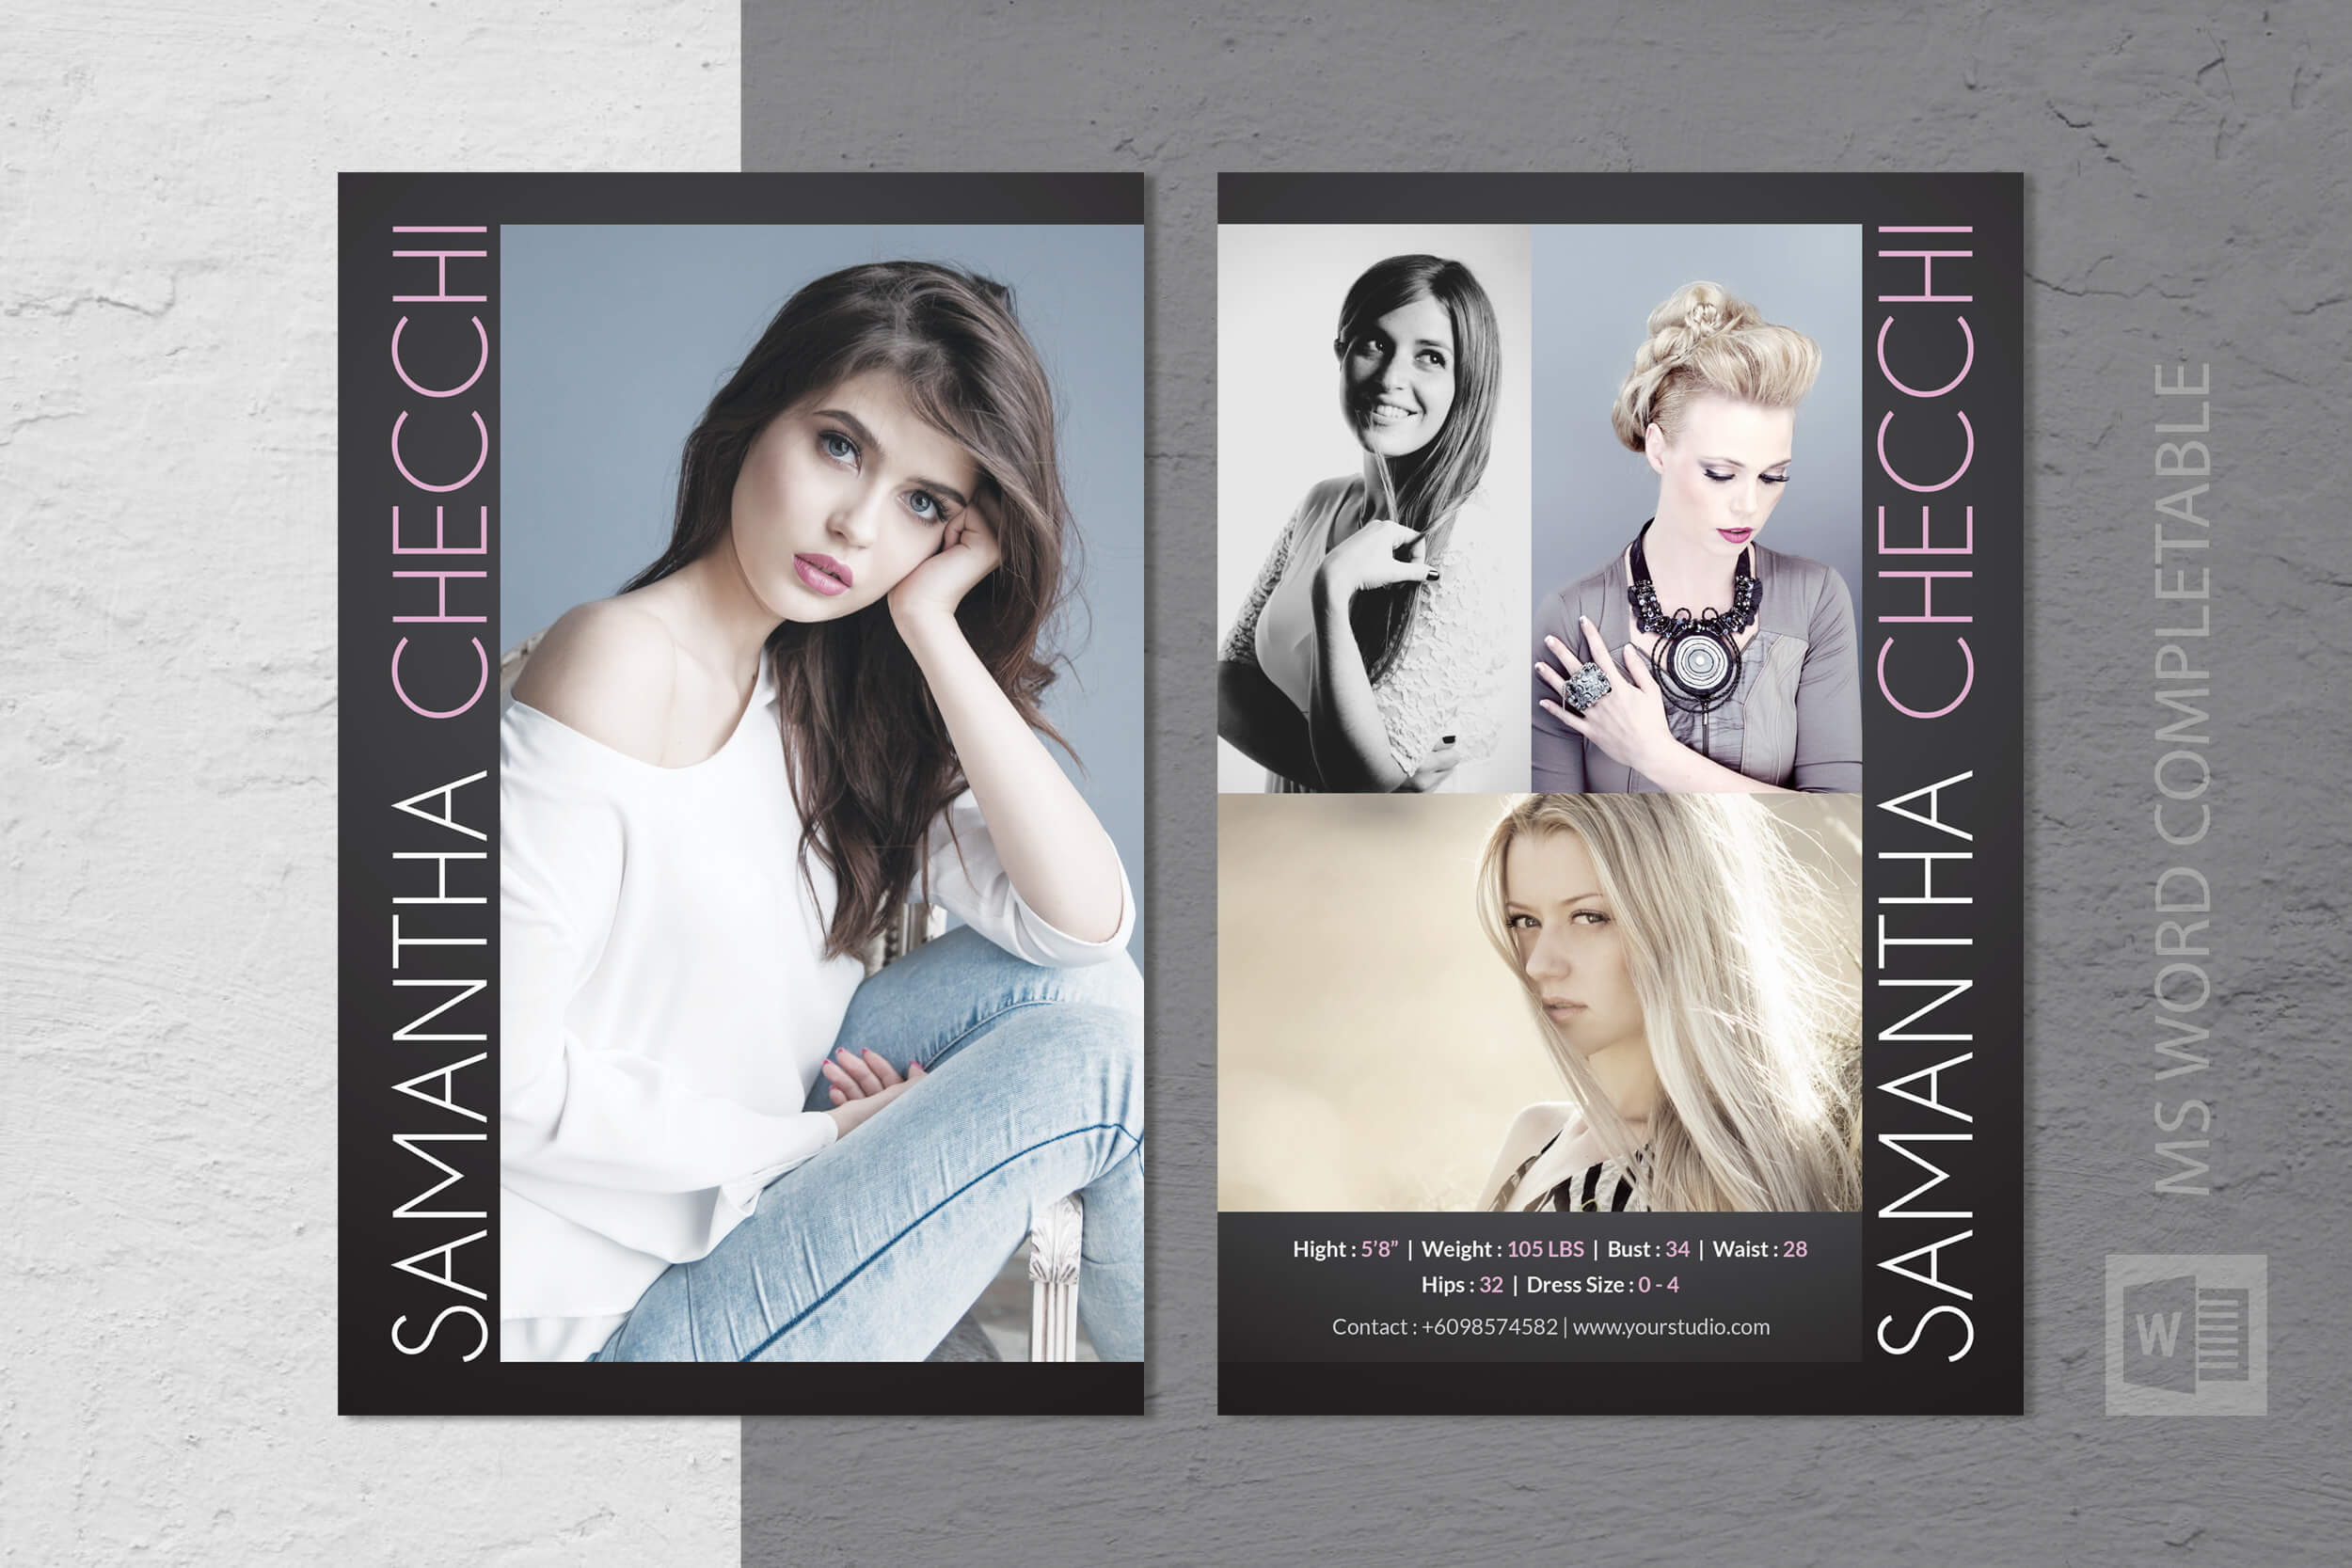 005 Model Comp Card Template Ideas Outstanding Photoshop Pertaining To Comp Card Template Download